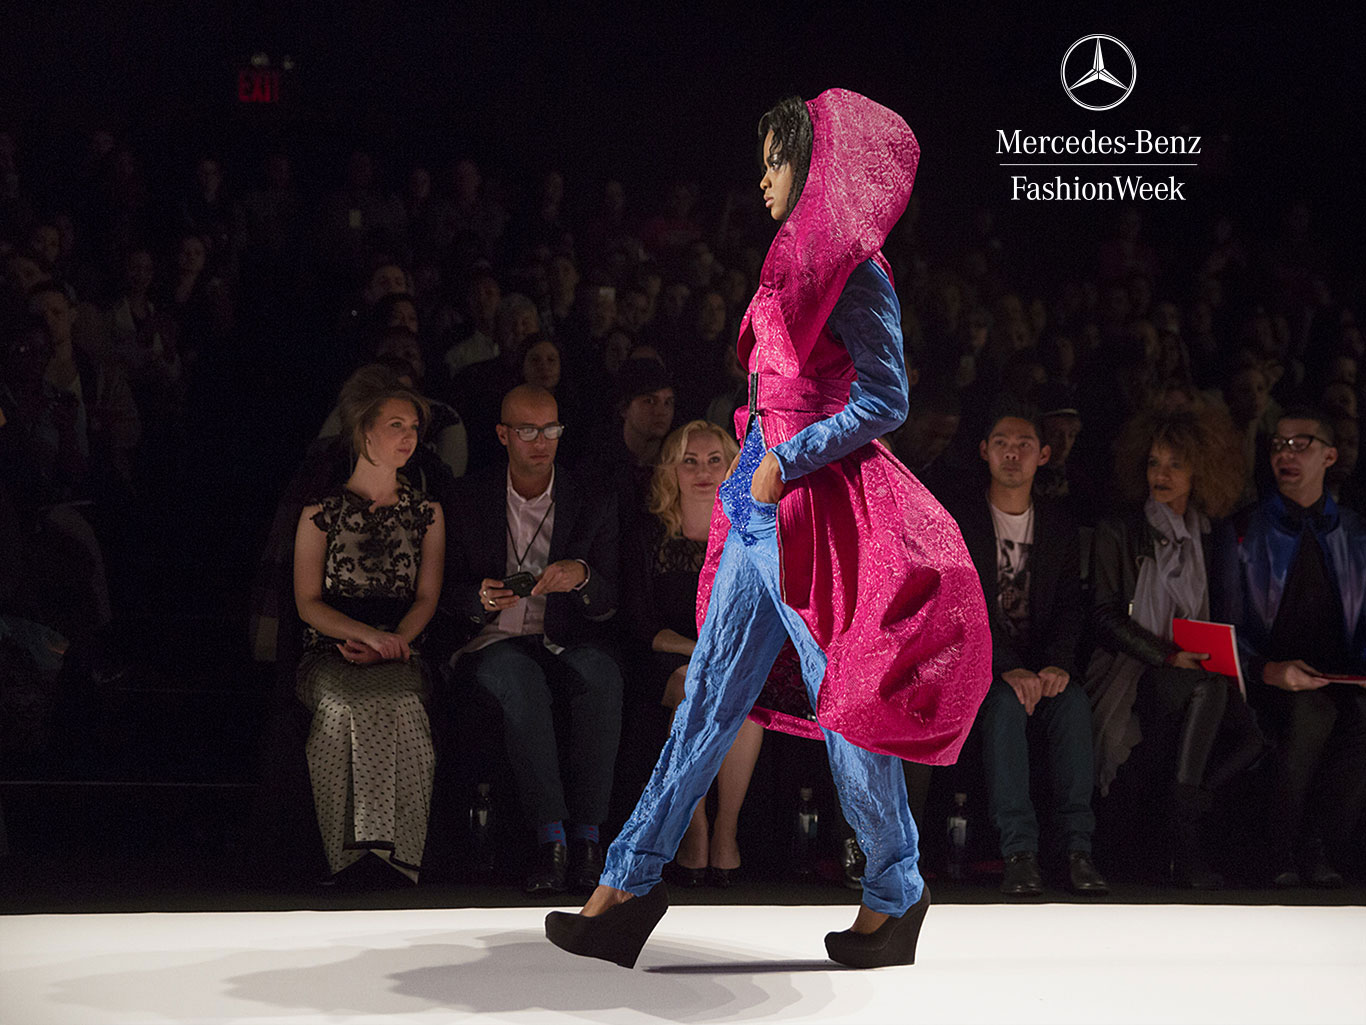 Mercedes-Benz Fashion Week 2015